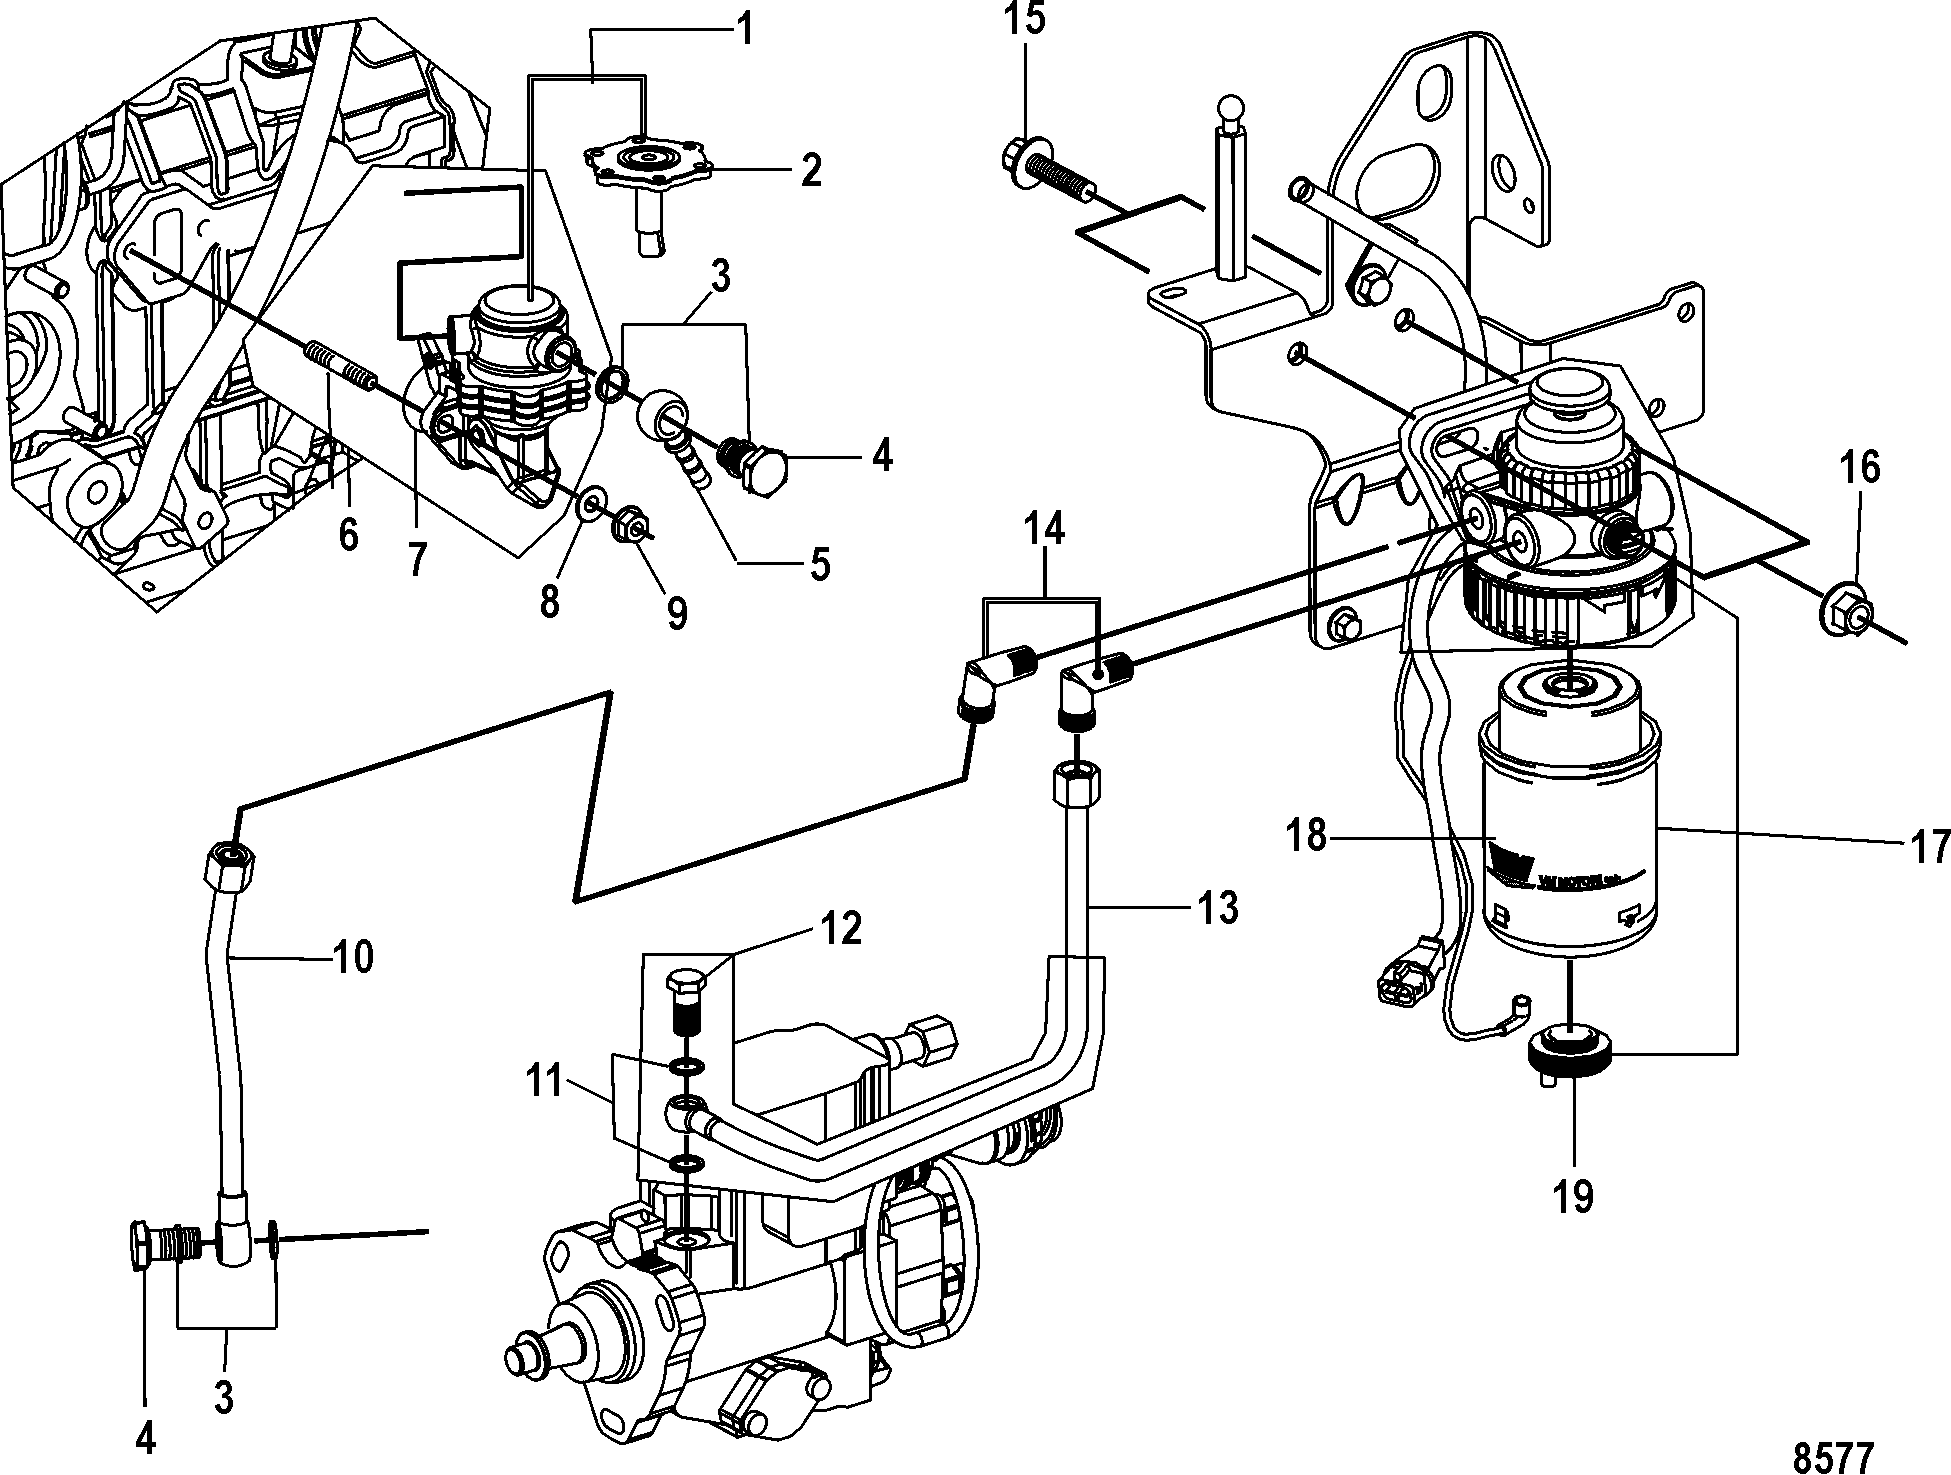 Dodge Dakota Wiring Diagrams further P 0900c1528007c8ad in addition 2005 Dodge Neon Vacuum Line Diagram Wiring Diagrams also Post ford 4 0 Sohc Engine Diagram 447089 in addition RepairGuideContent. on coolant hoses 2 7 v6 diesel